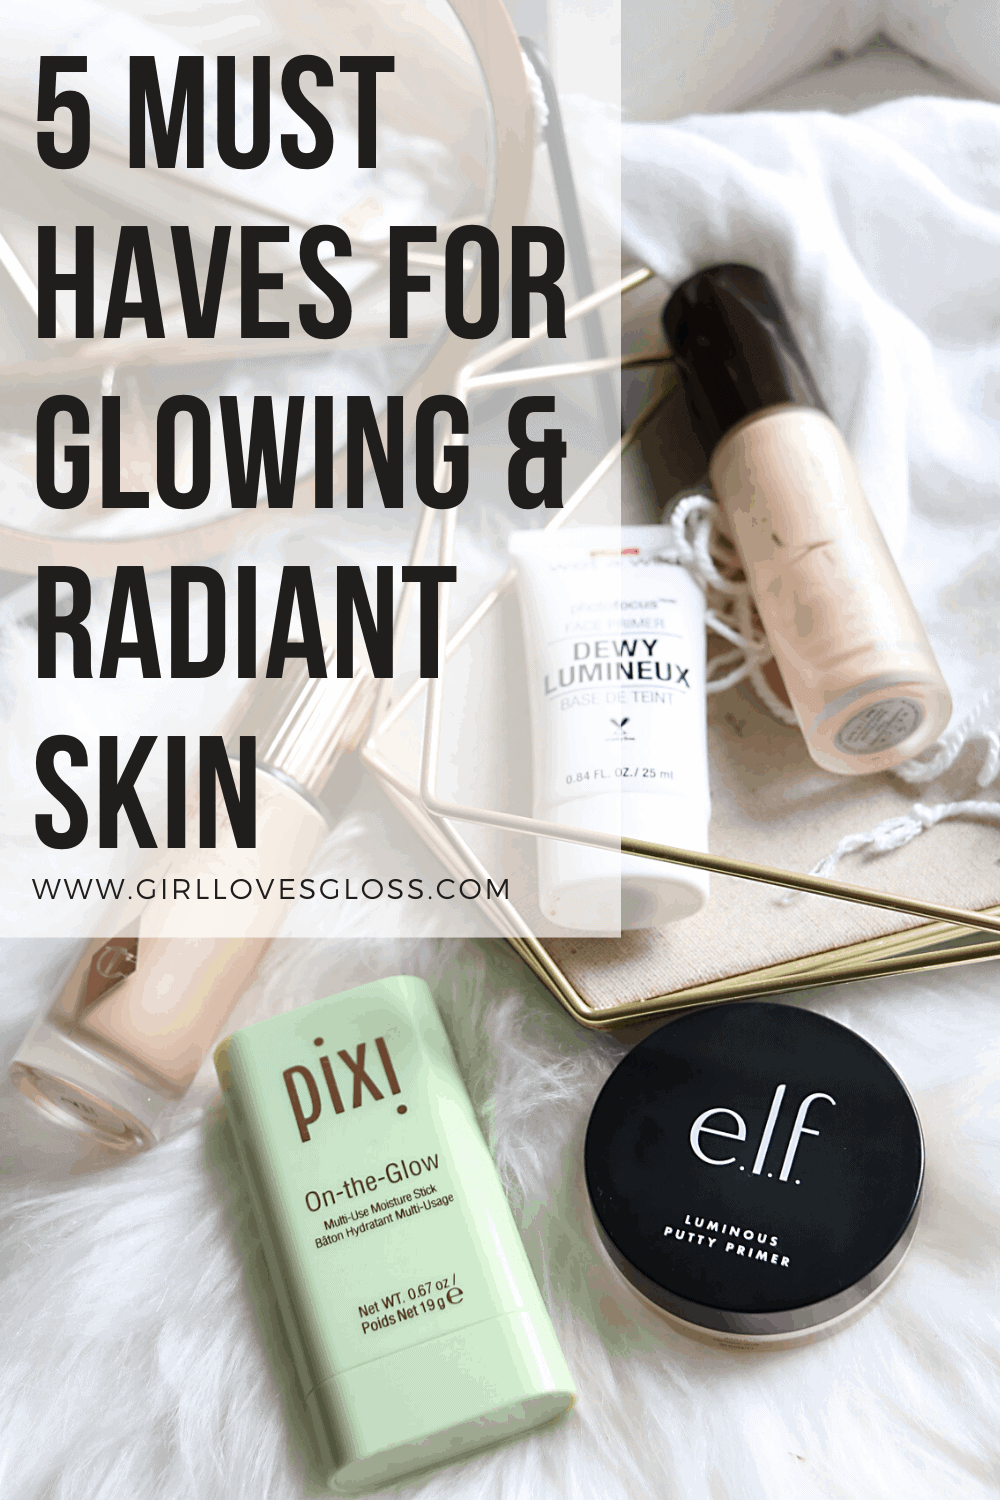 The best products to get glowing skin